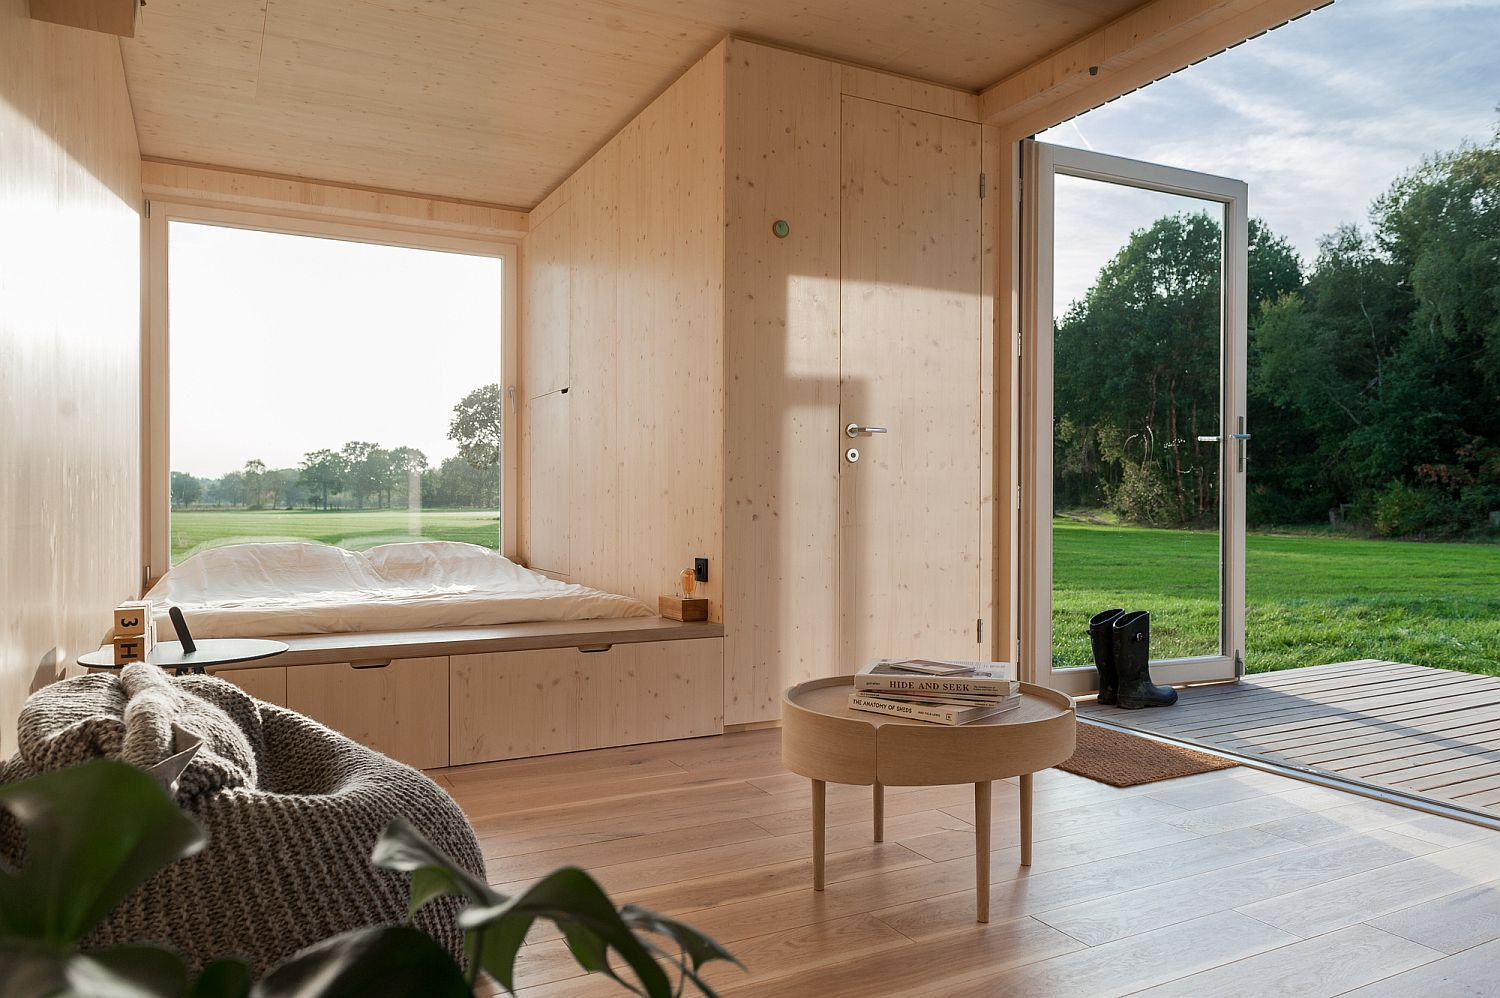 Bedroom of the cabin completely opens up towards the world outside